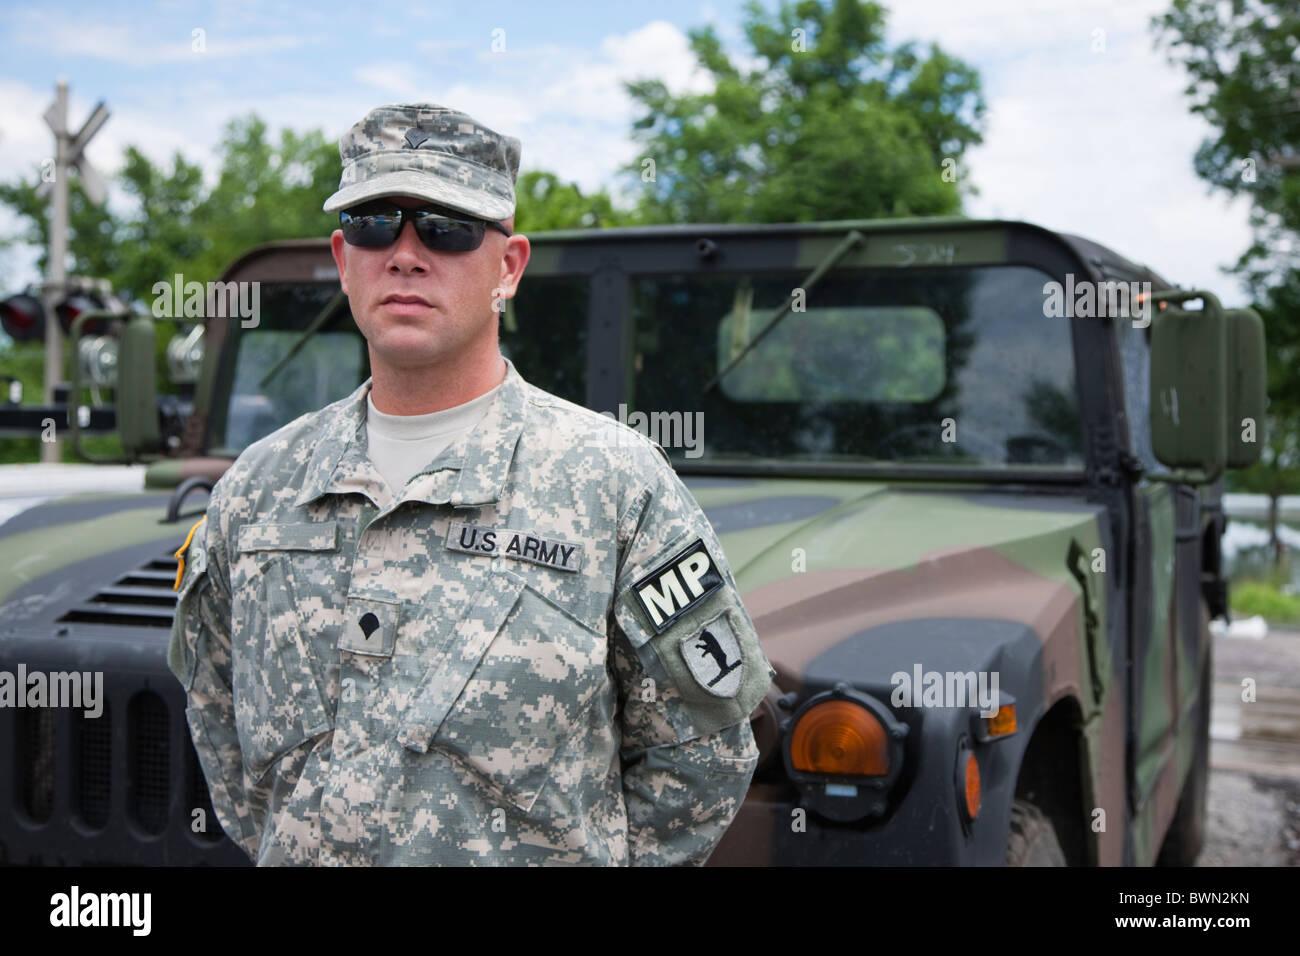 USA, Missouri, Portrait of US soldier standing in front of hummer - Stock Image